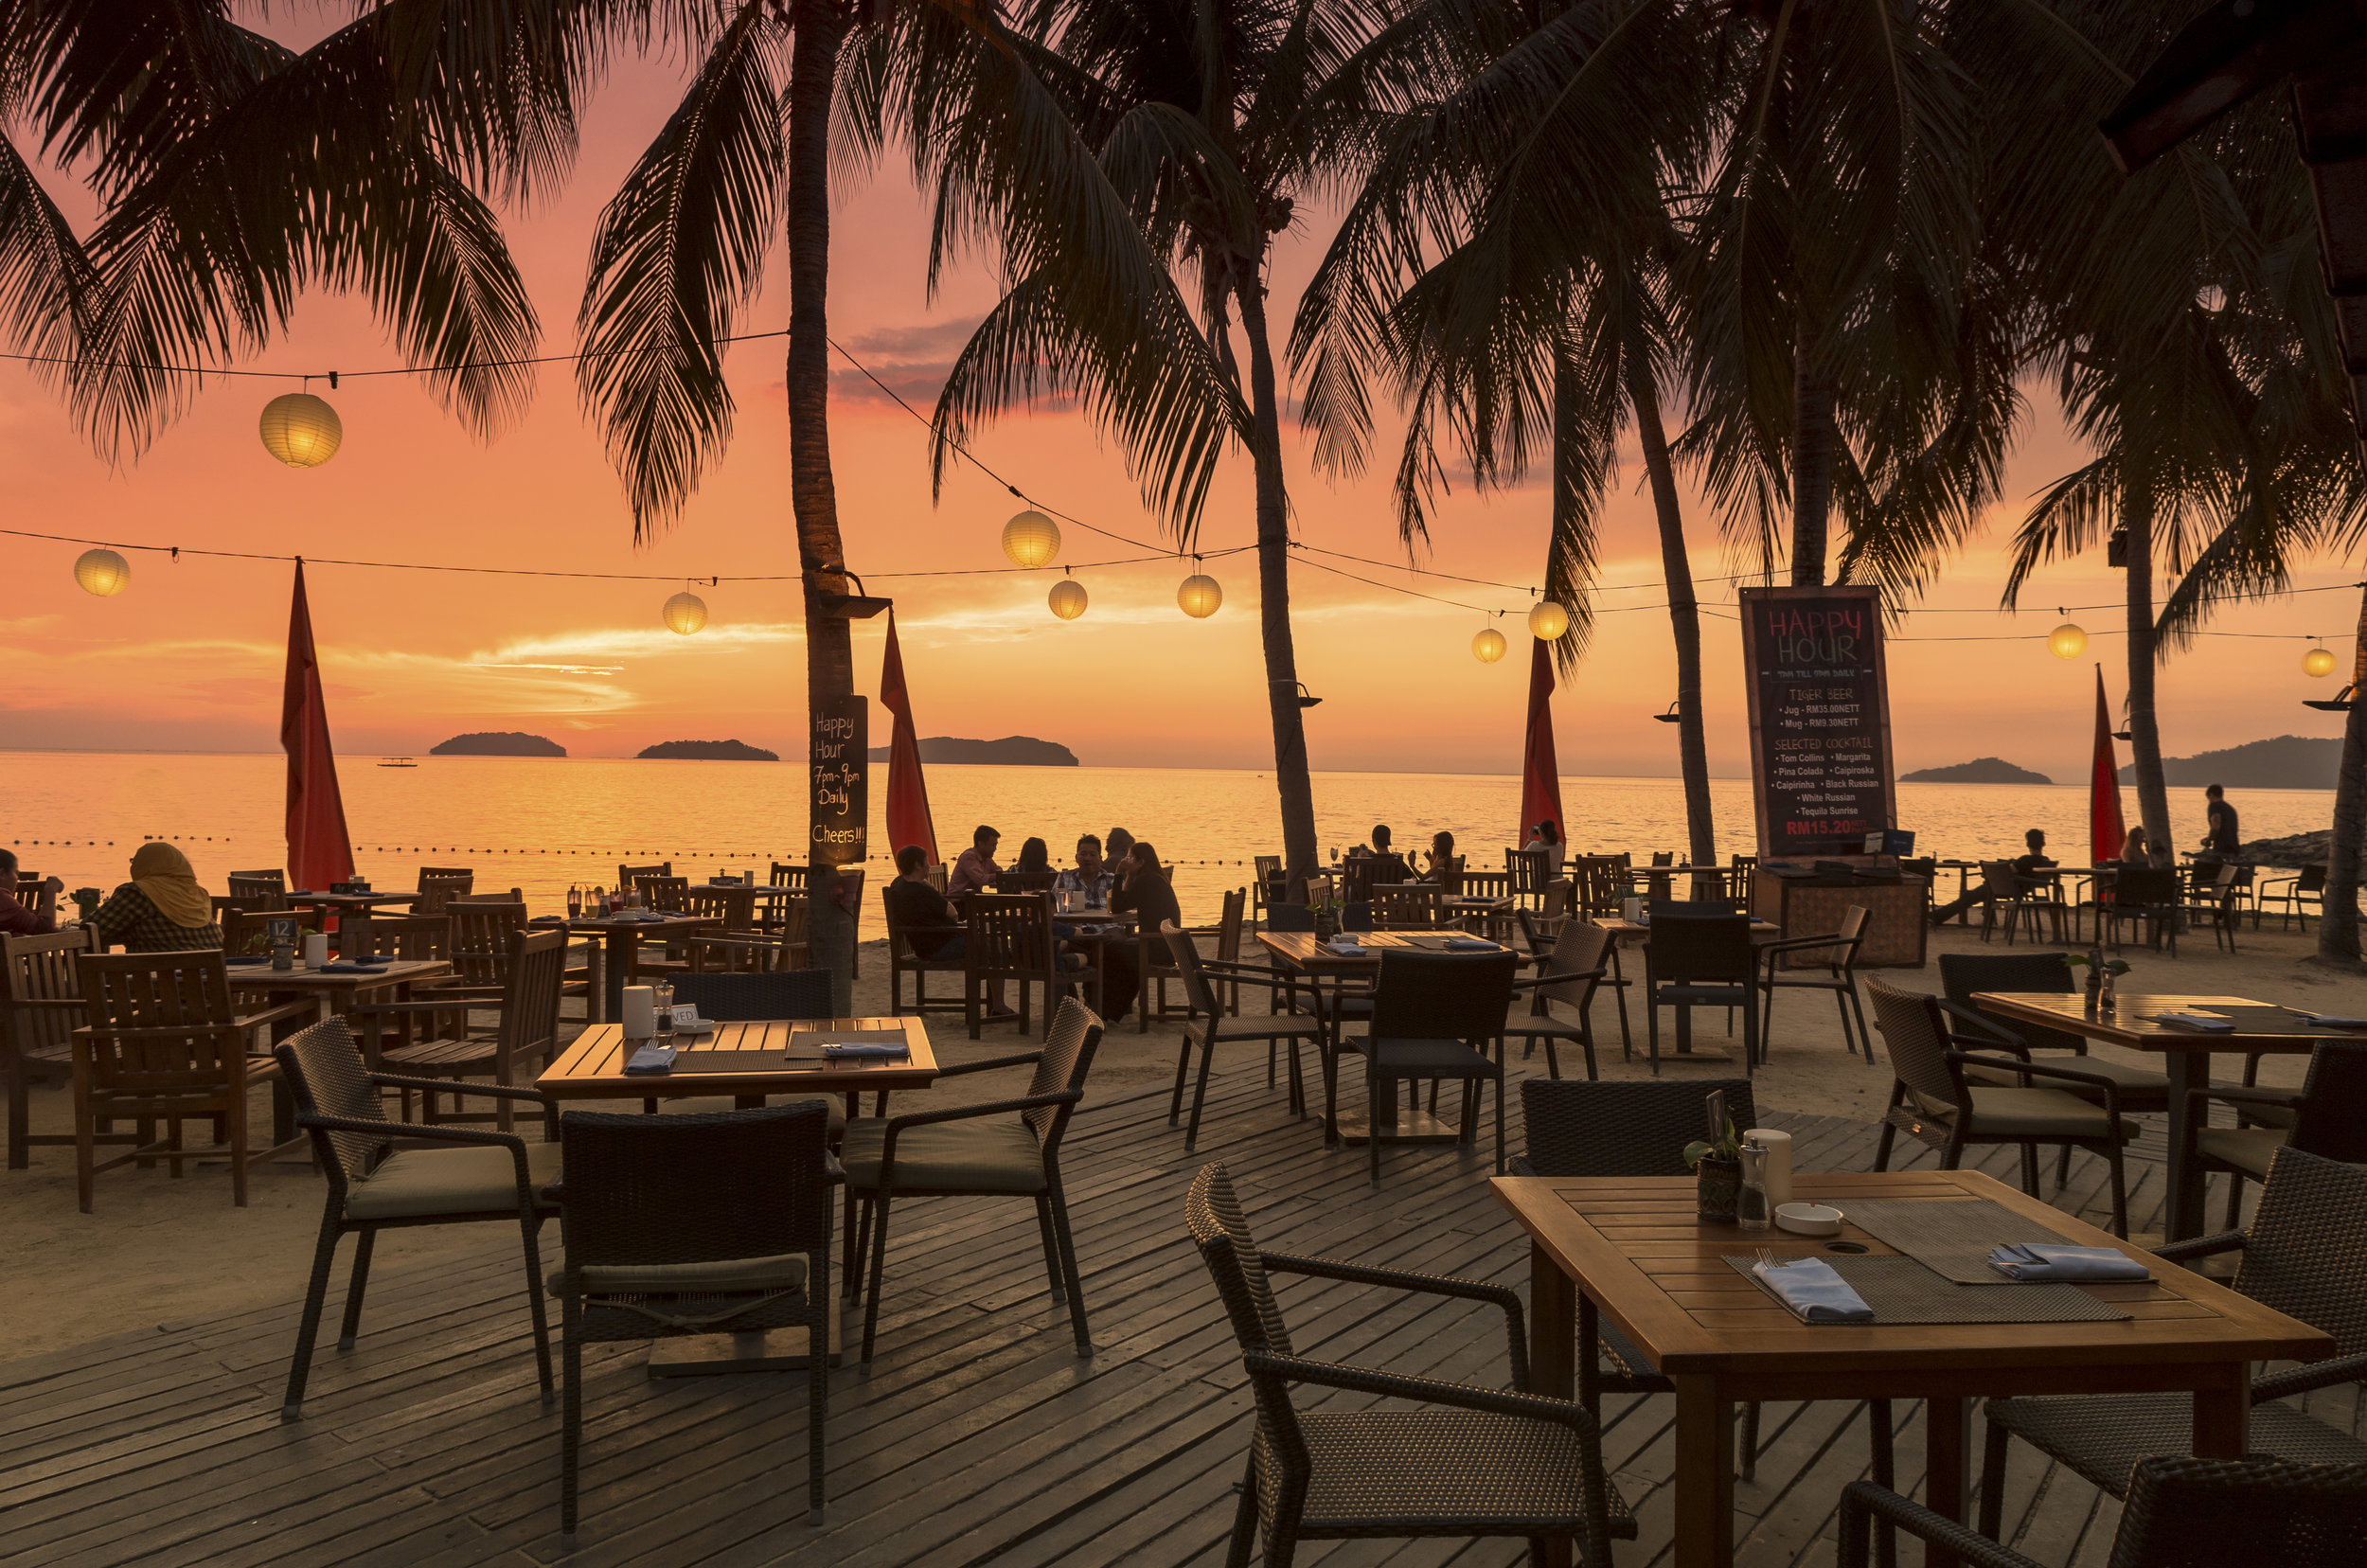 The Pacific Sutera Hotel_The Breeze Beach Club.jpg